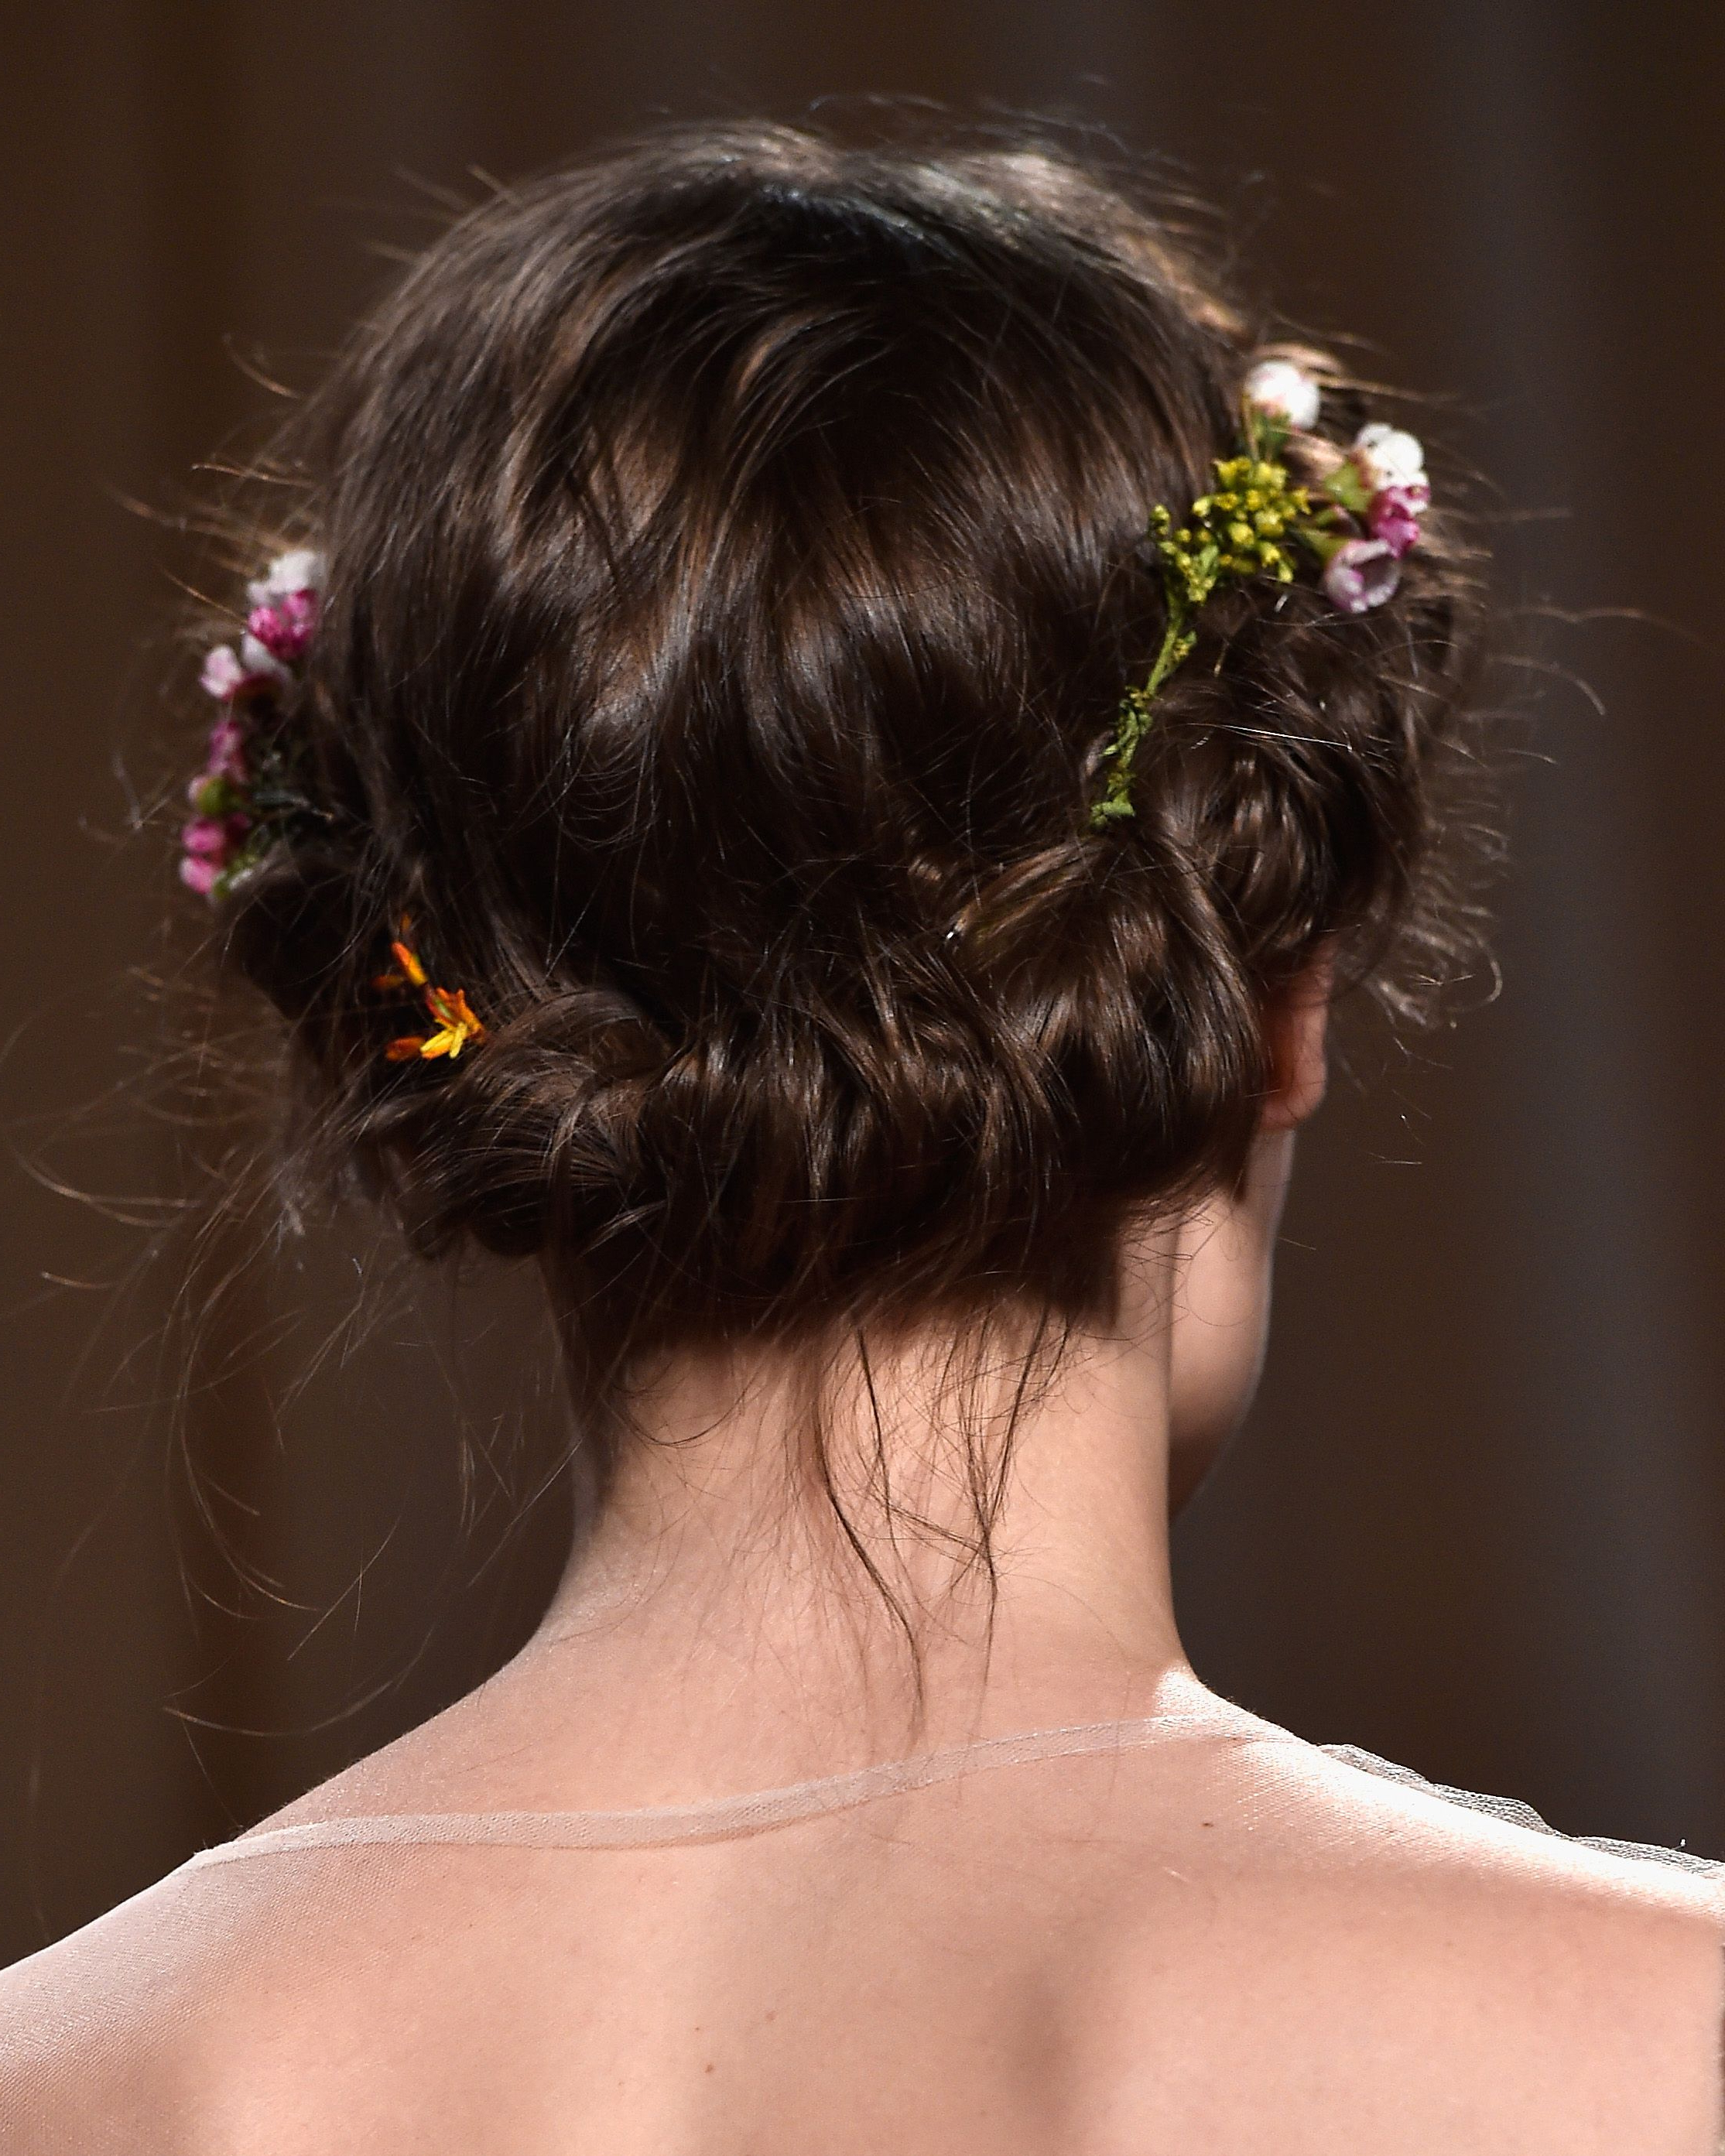 Wedding Hair Inspiration – Wedding Hairstyles For Brides & Bridesmaids Regarding Well Known Undone Low Bun Bridal Hairstyles With Floral Headband (Gallery 20 of 20)